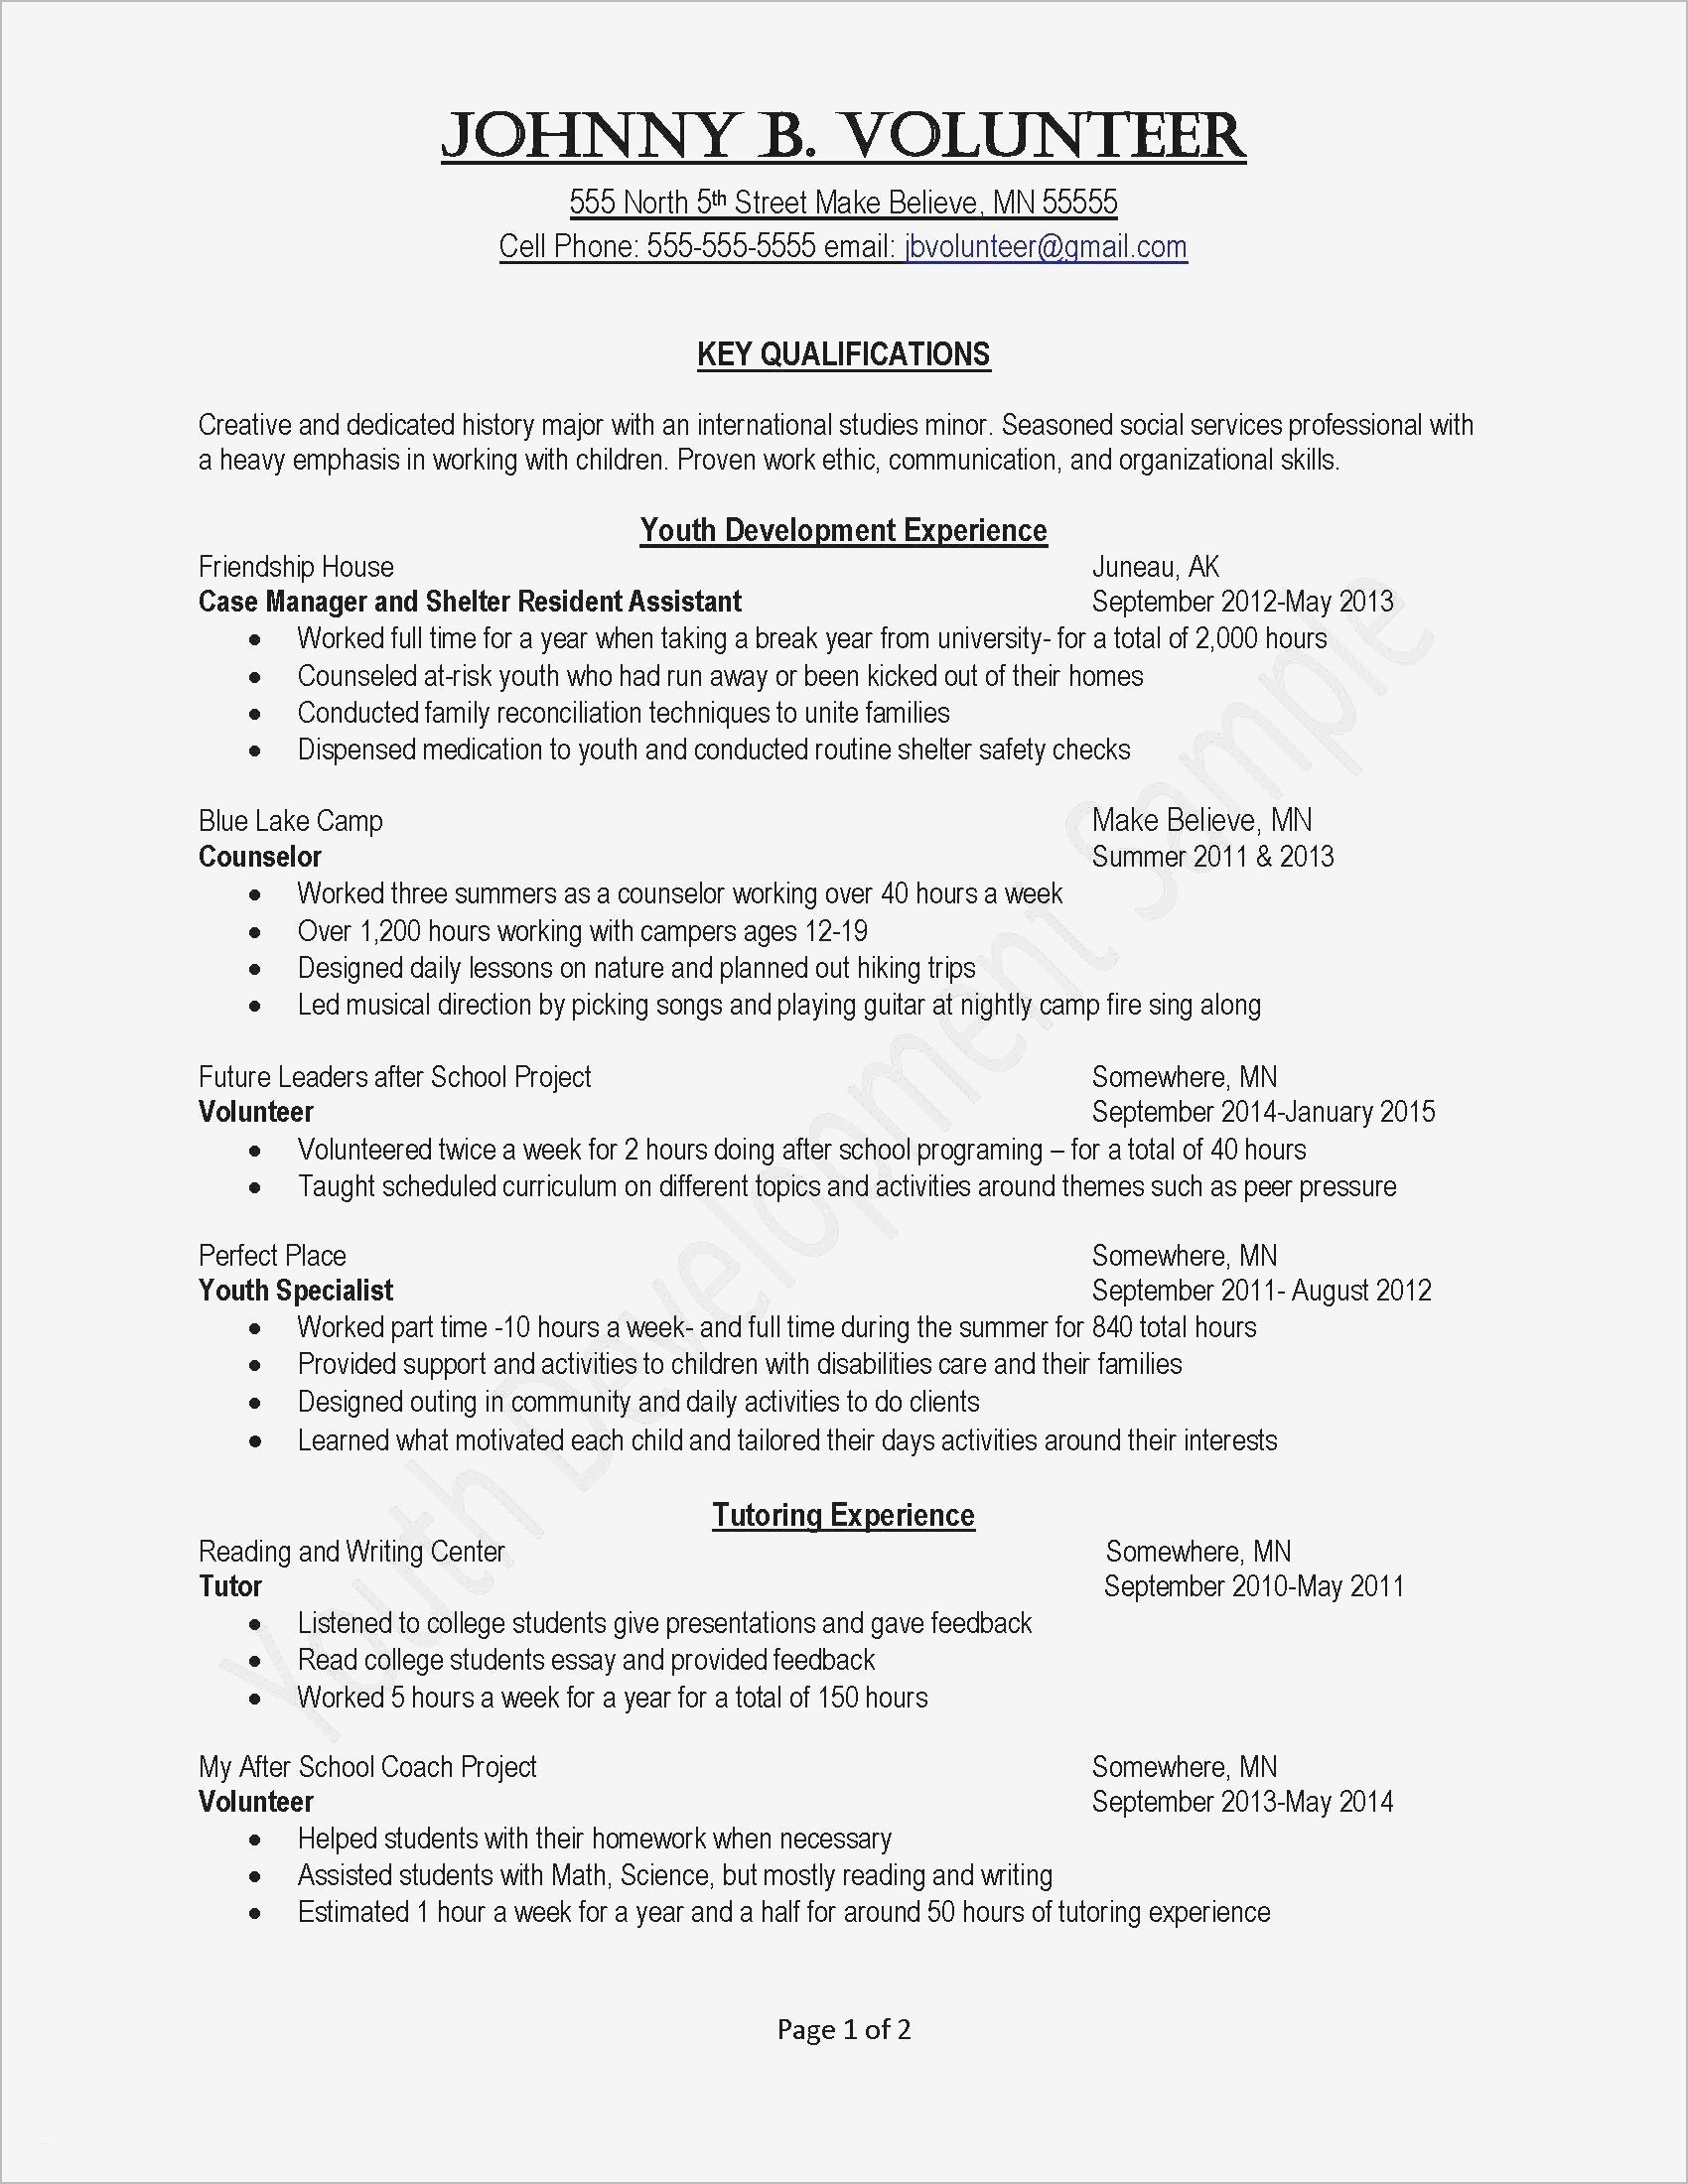 Video Sales Letter Template - Resume and Cover Letter Template Elegant Activities Resume Template